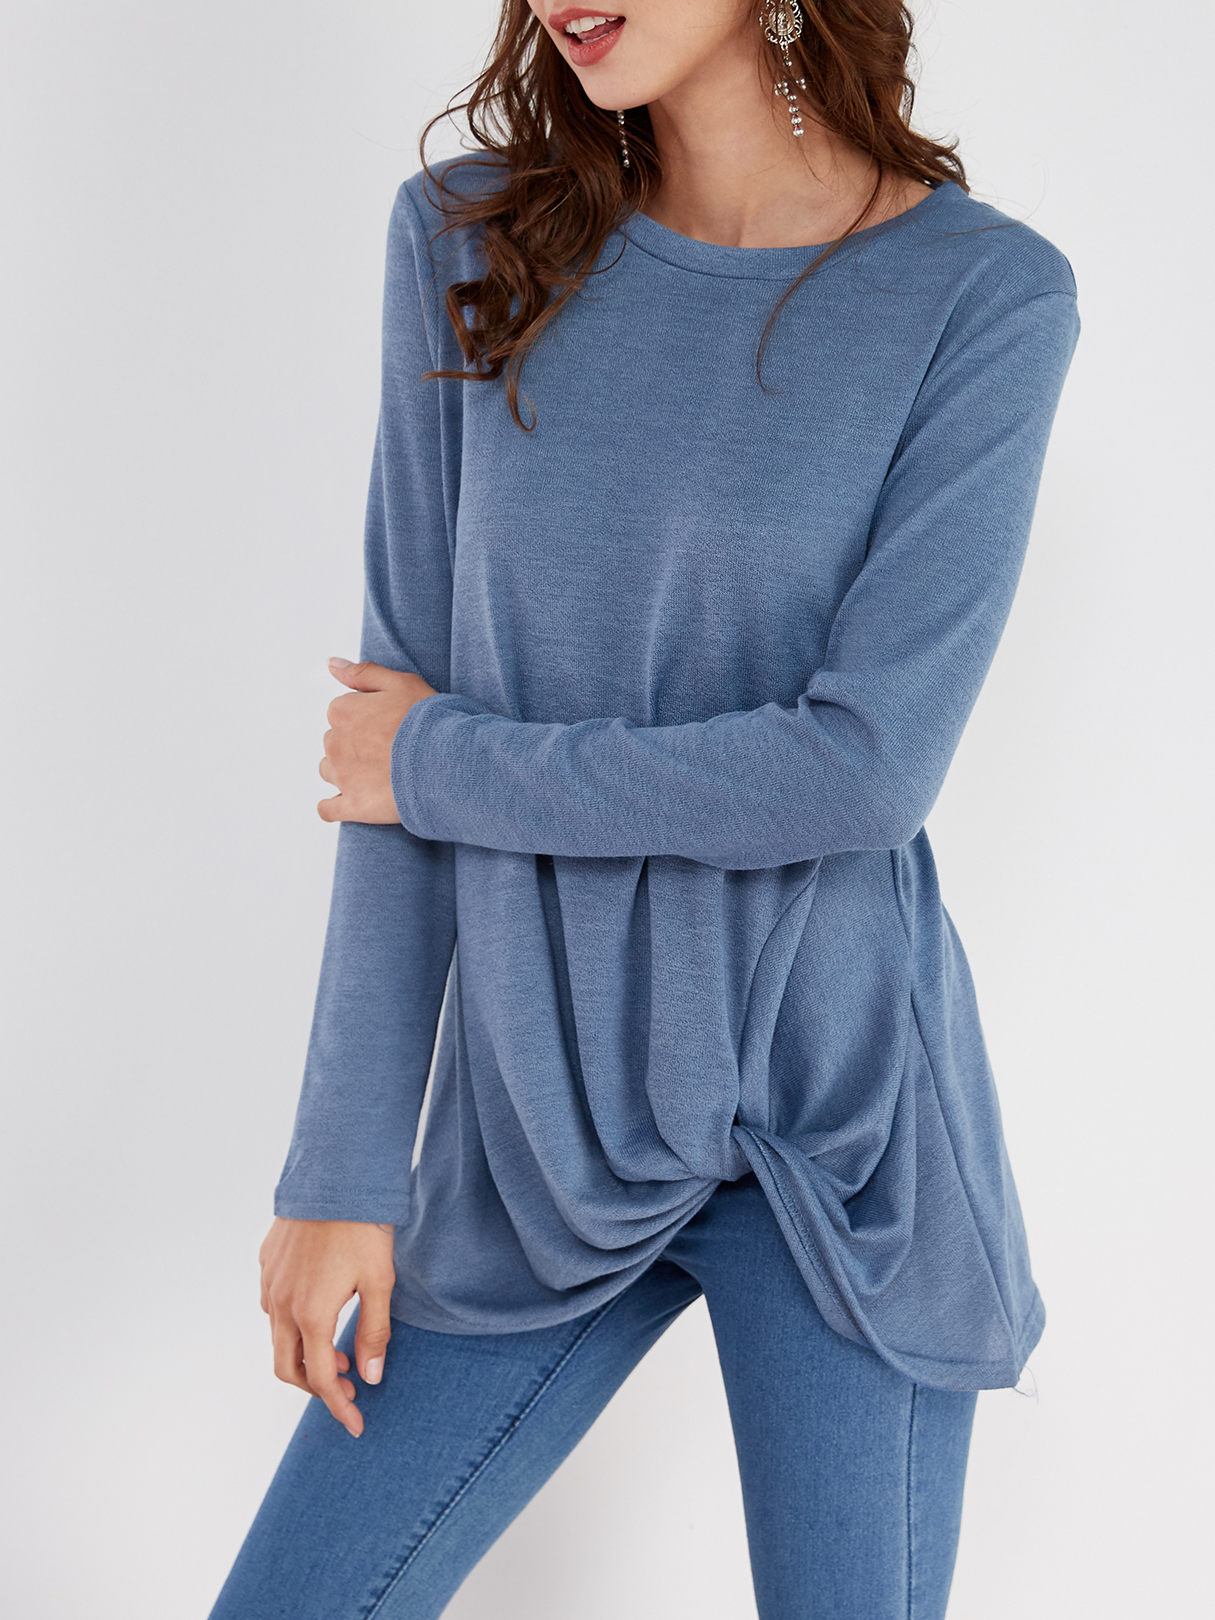 Blue Pleated Design Round Neck Long Sleeves T-shirts blue pleated design plain crew neck long sleeves t shirts